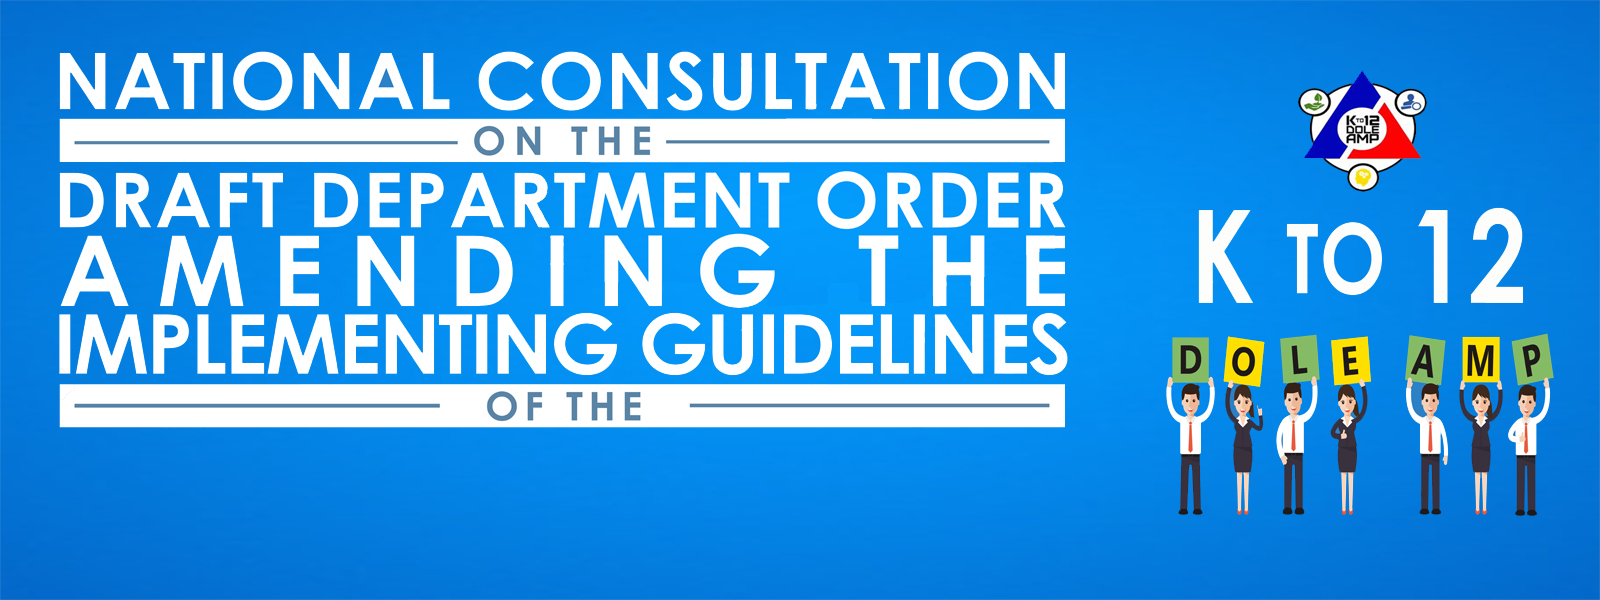 DOLE-BLE conducts National Consultation on the Draft Amendment of K to 12 DOLE AMP Implementing Guidelines